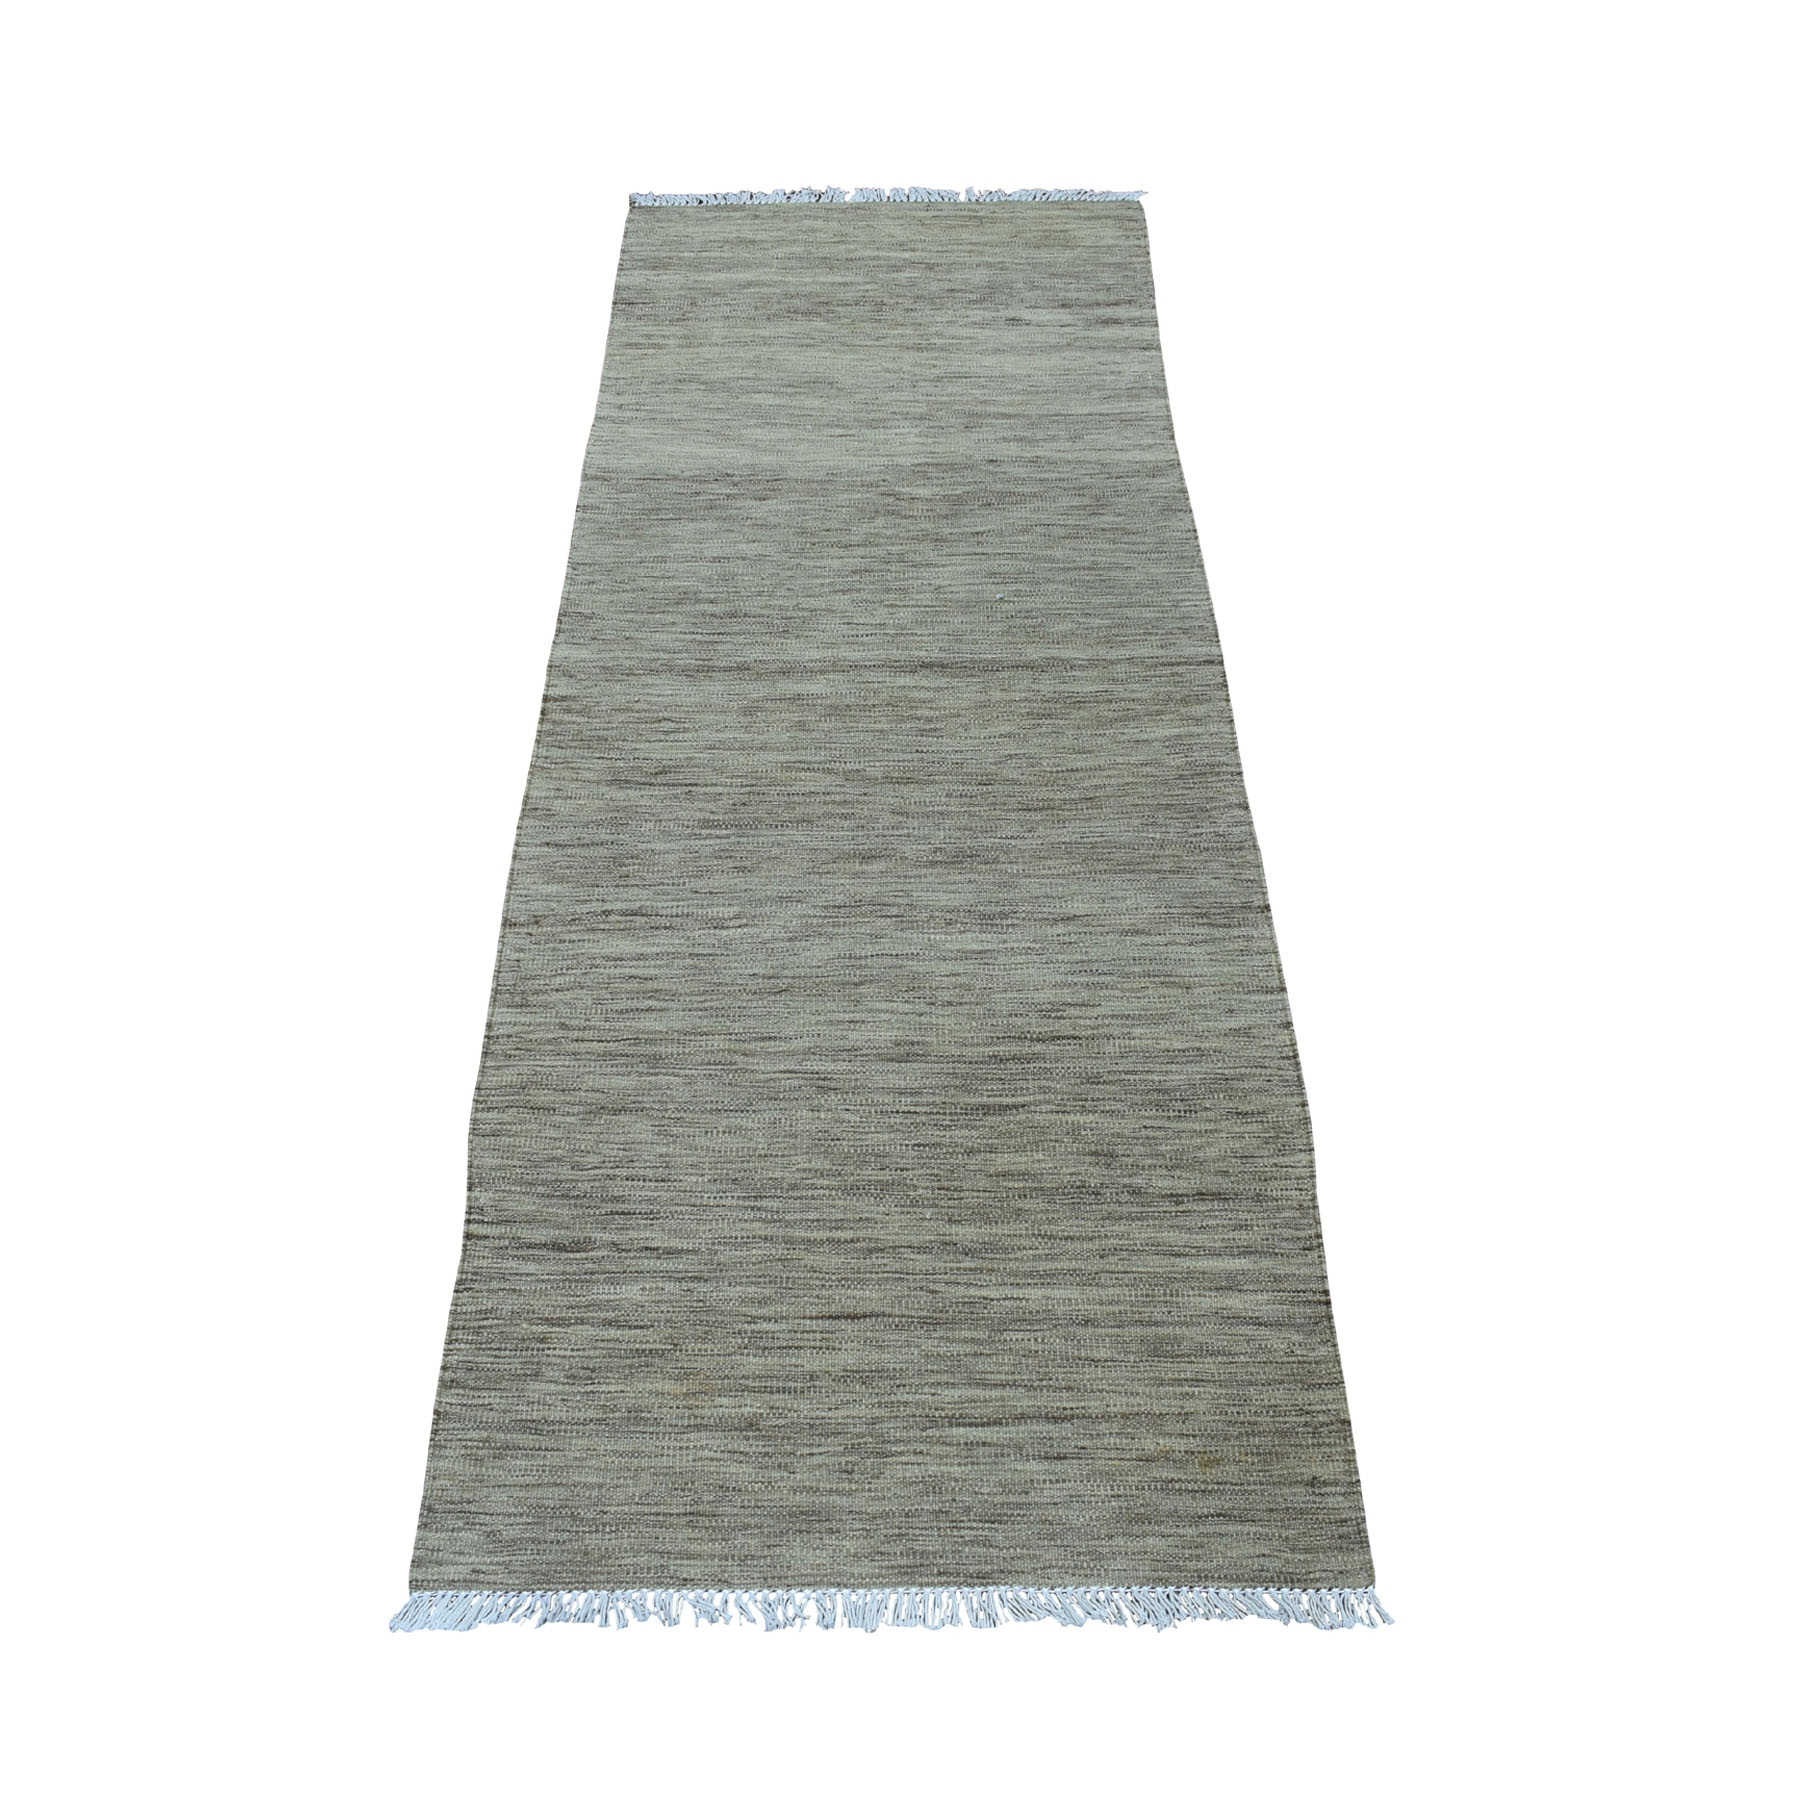 Fine Kilim Collection Hand Woven Grey Rug No: 01107754